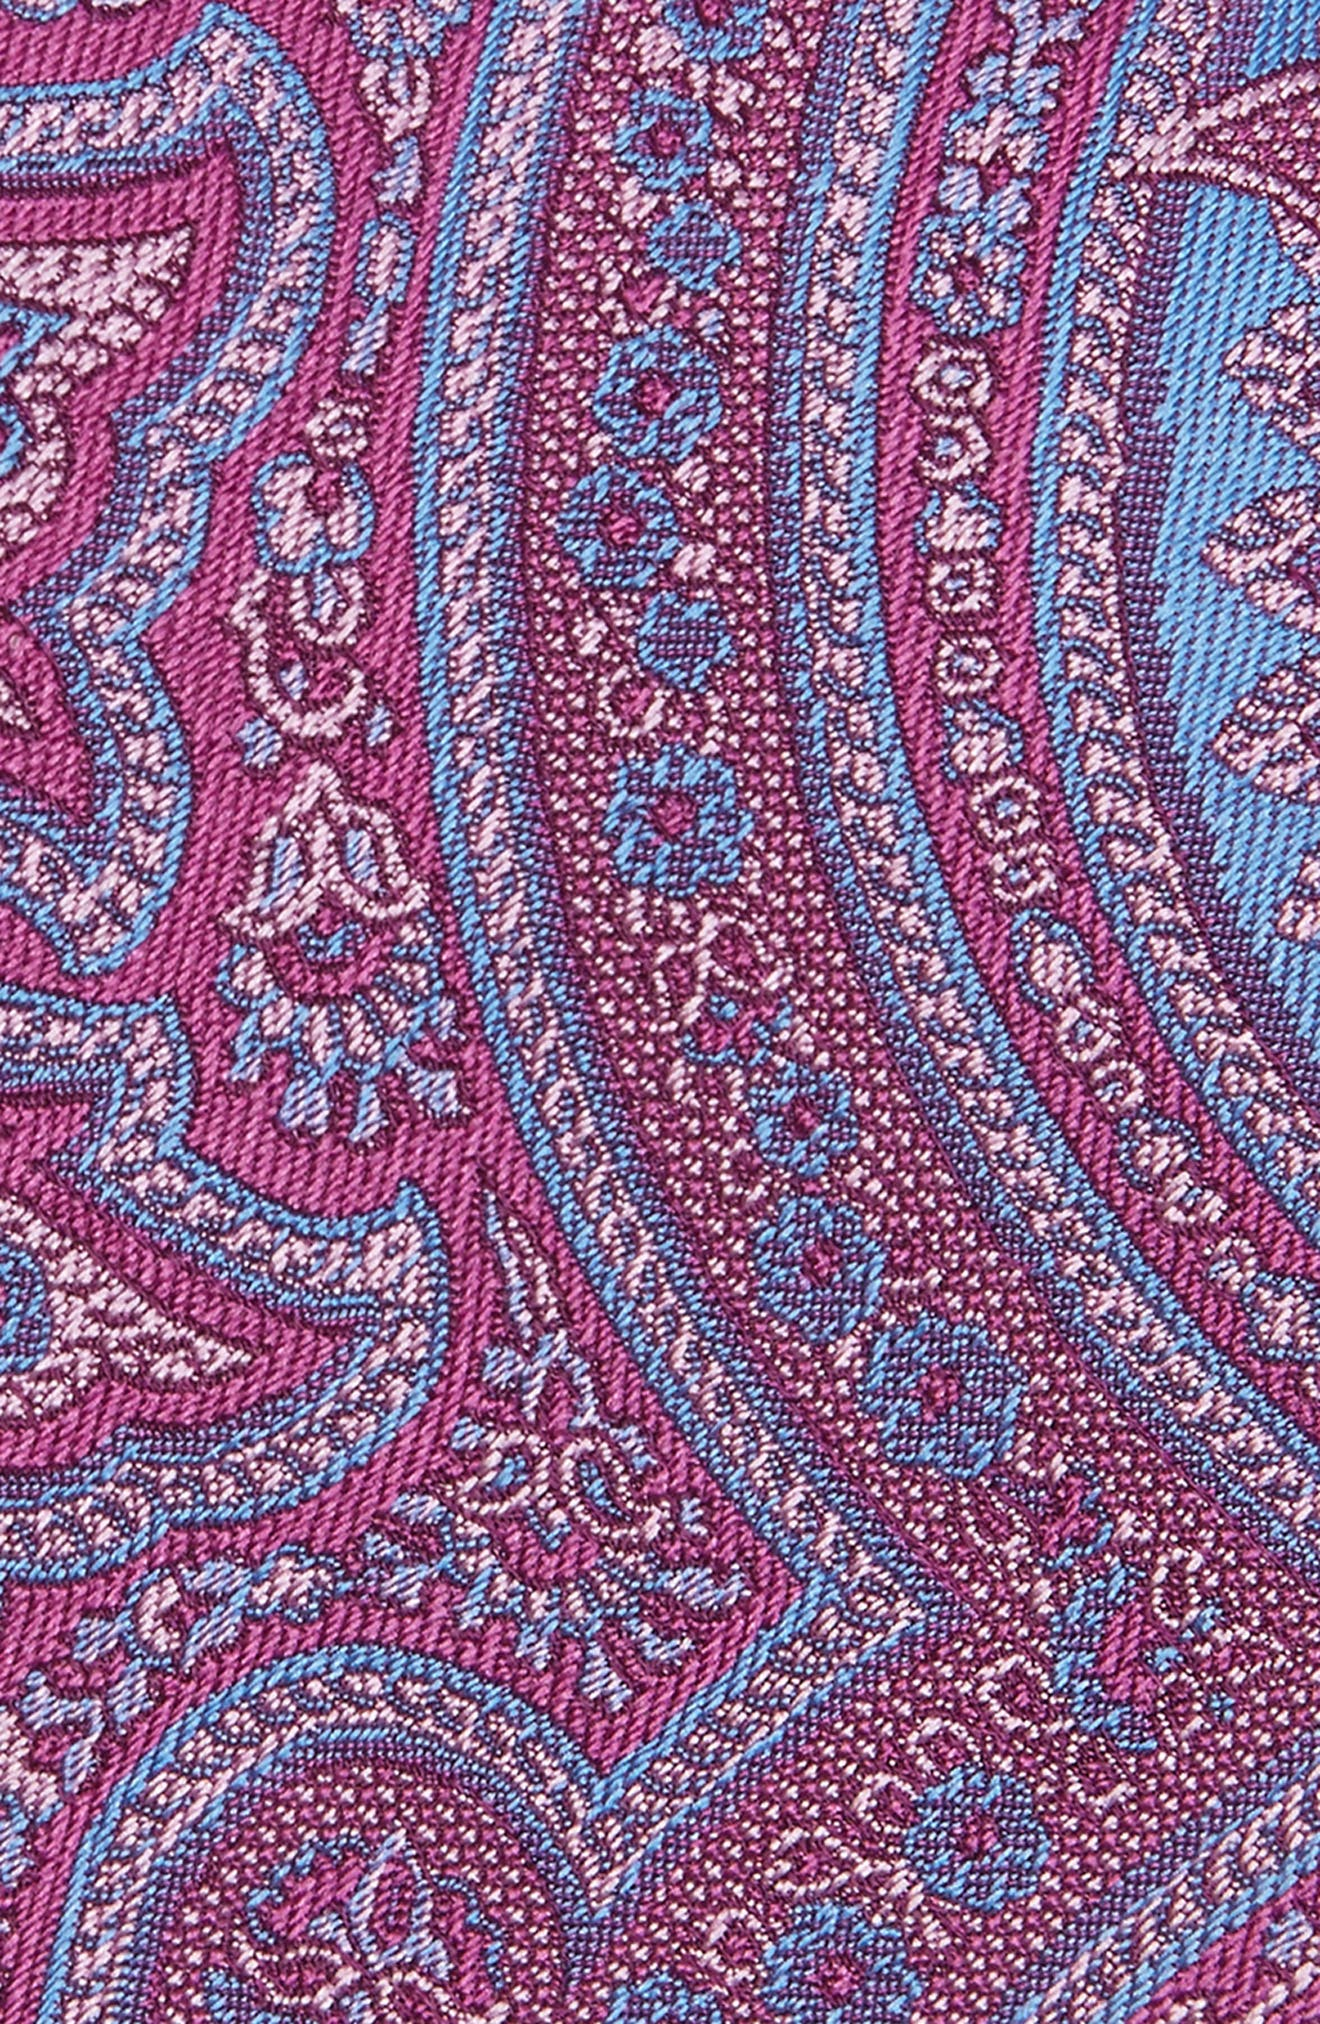 Paisley Silk Tie,                             Alternate thumbnail 2, color,                             Berry